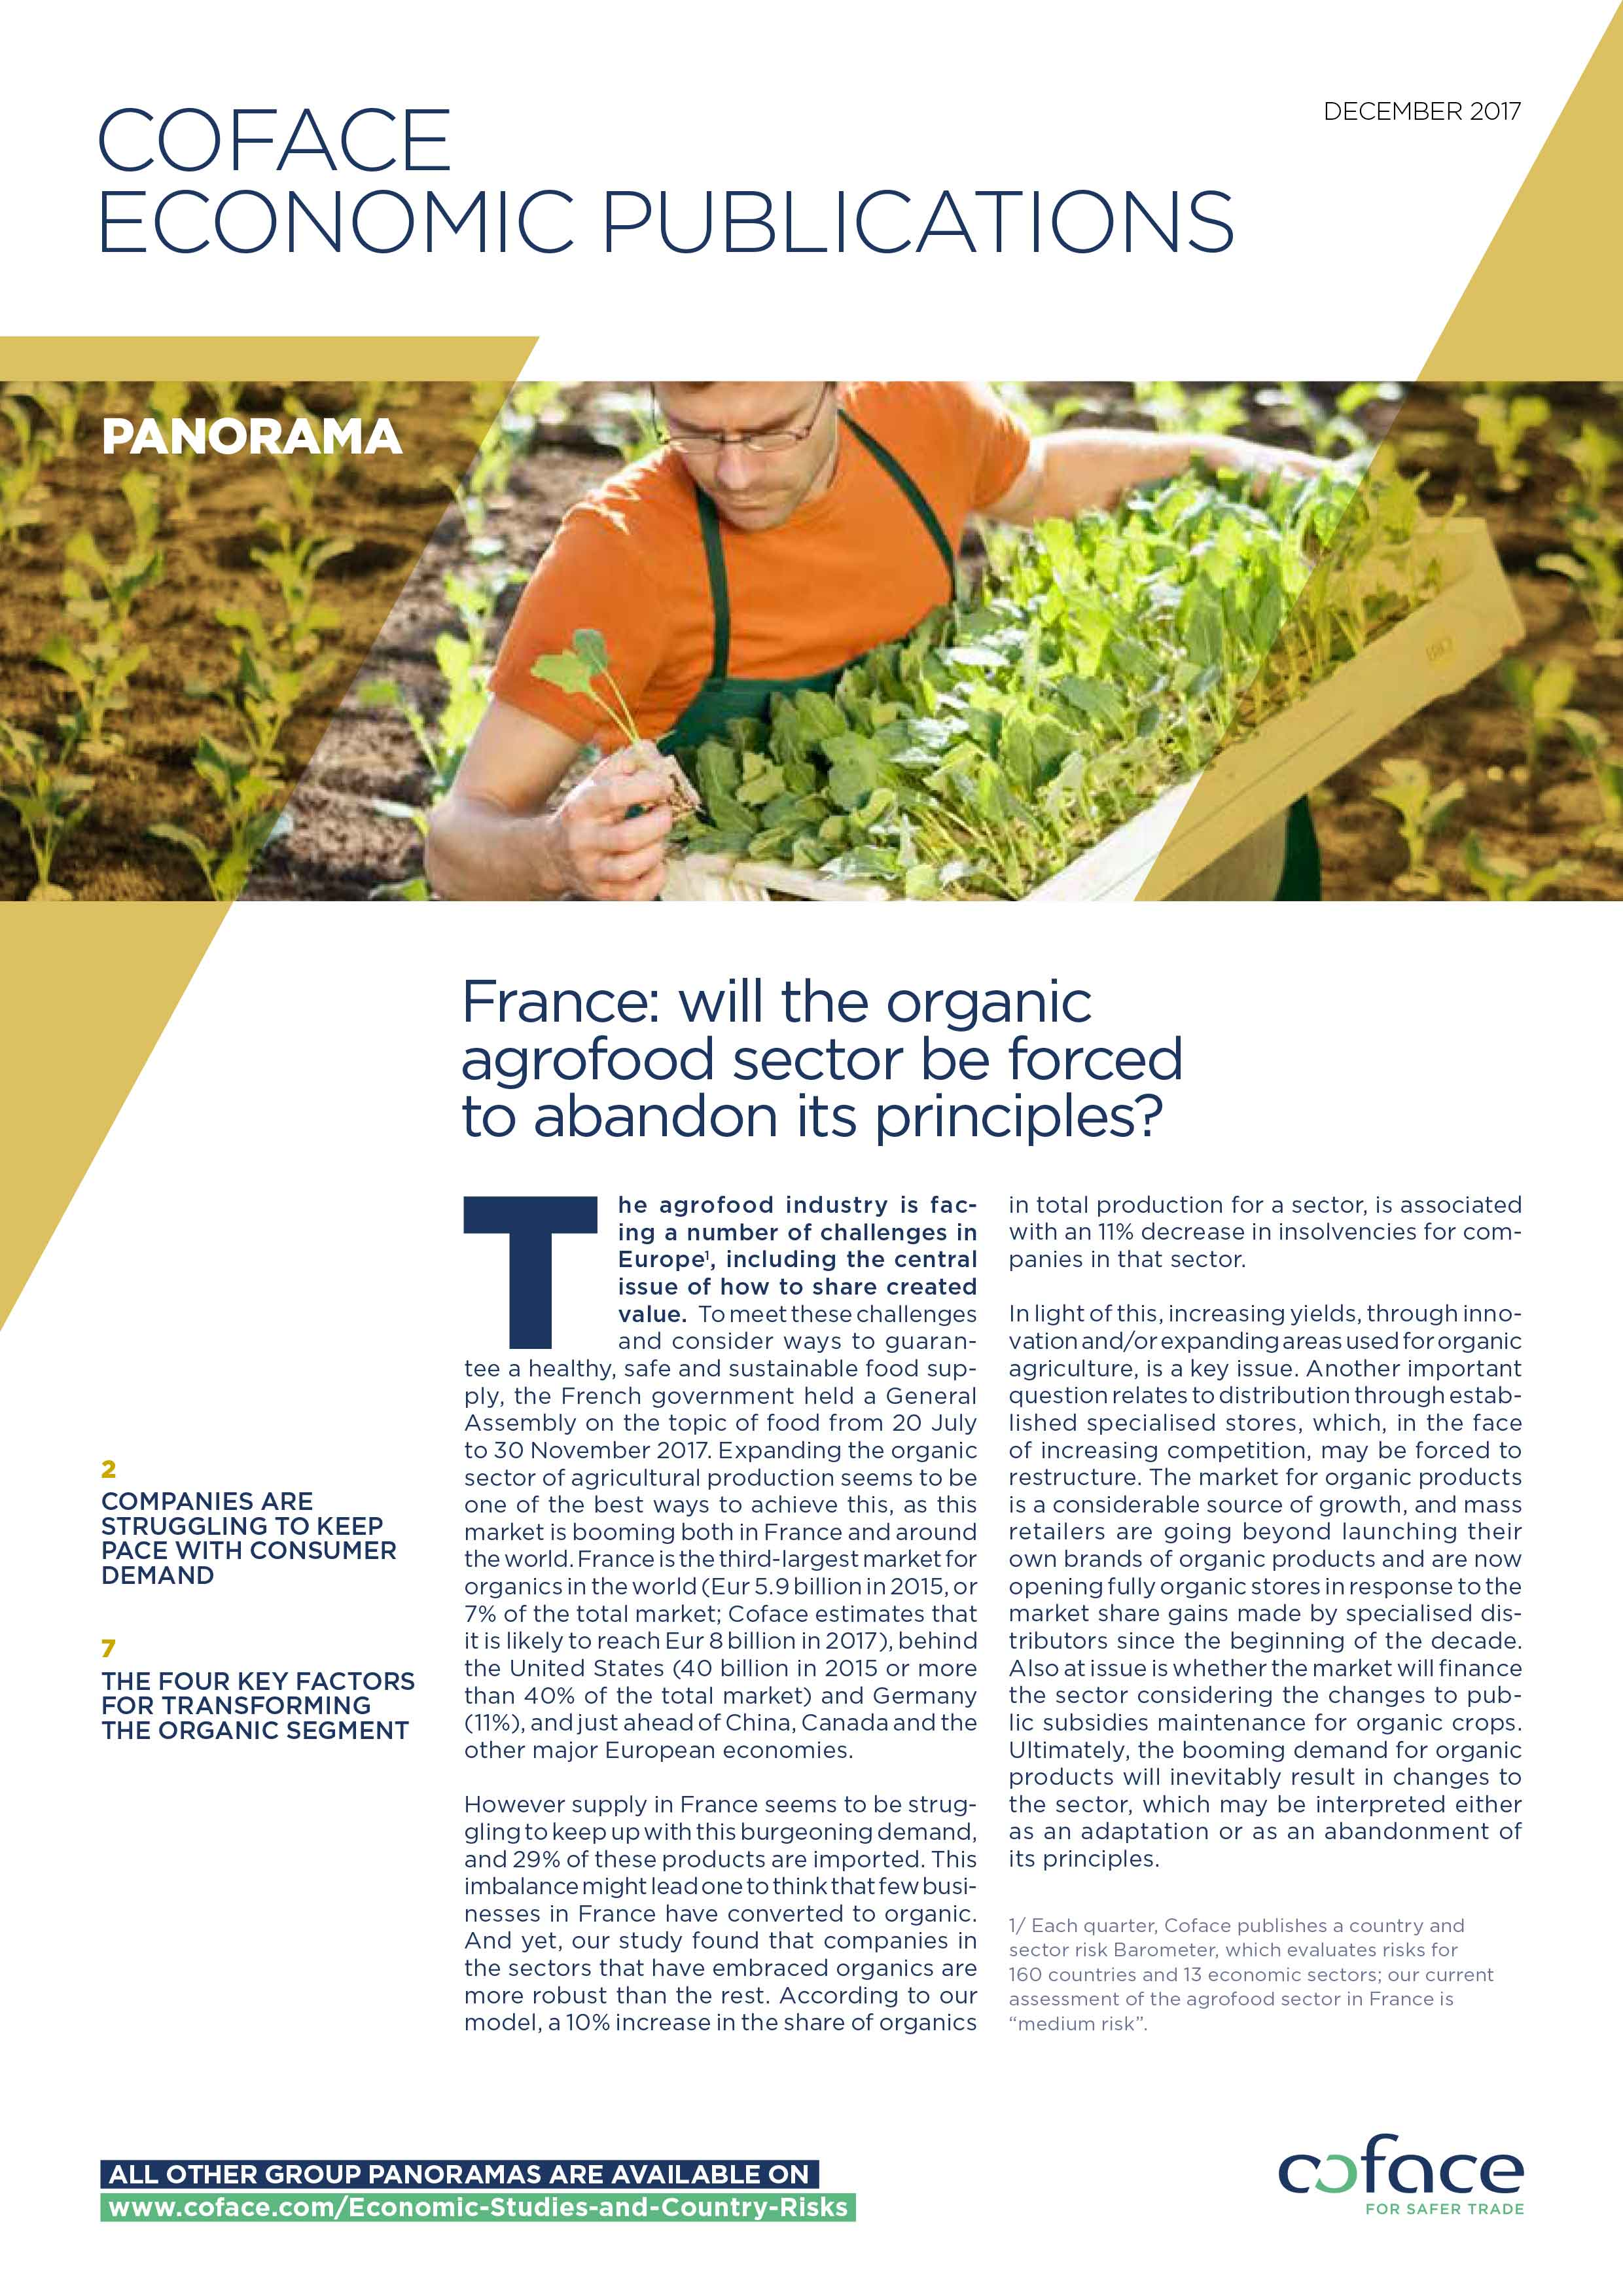 France: will the organic agrofood sector be forced to abandon its principles?